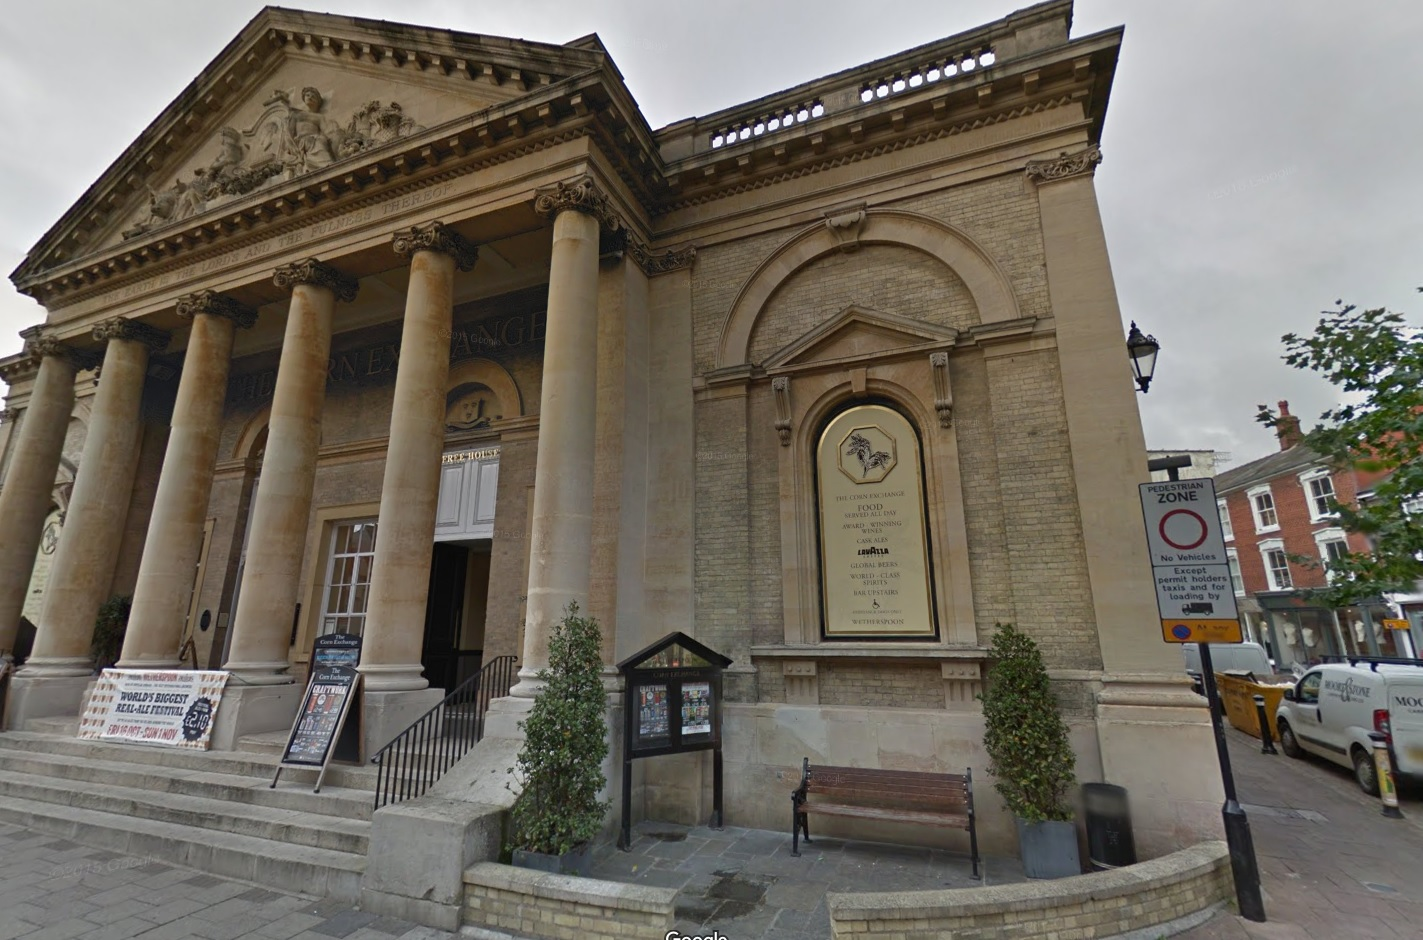 The Corn Exchange Wetherspoons pub, Google Street View